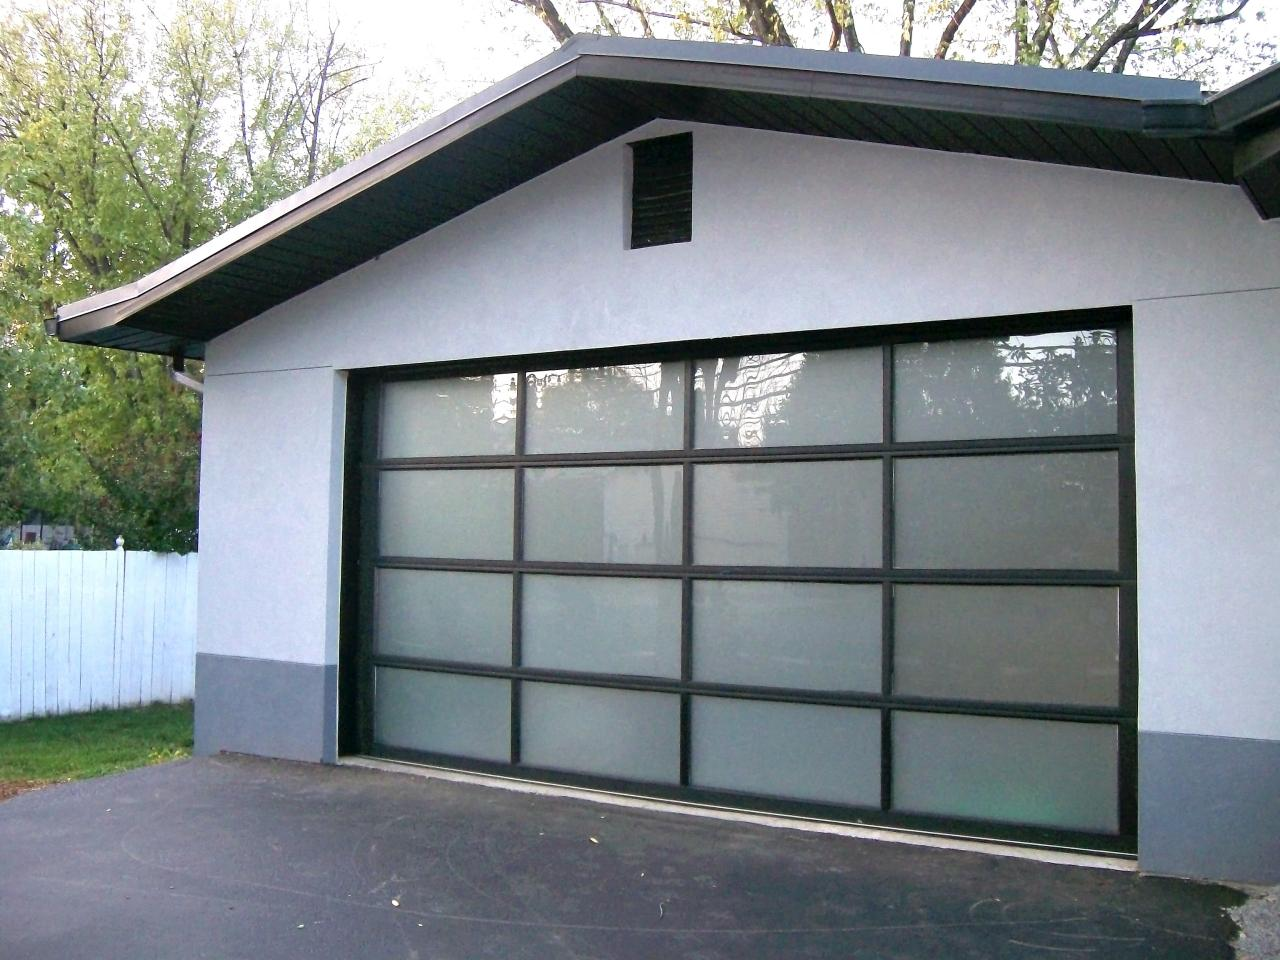 Garage door buying guide diy terrenoire garage doors4x3 solutioingenieria Gallery